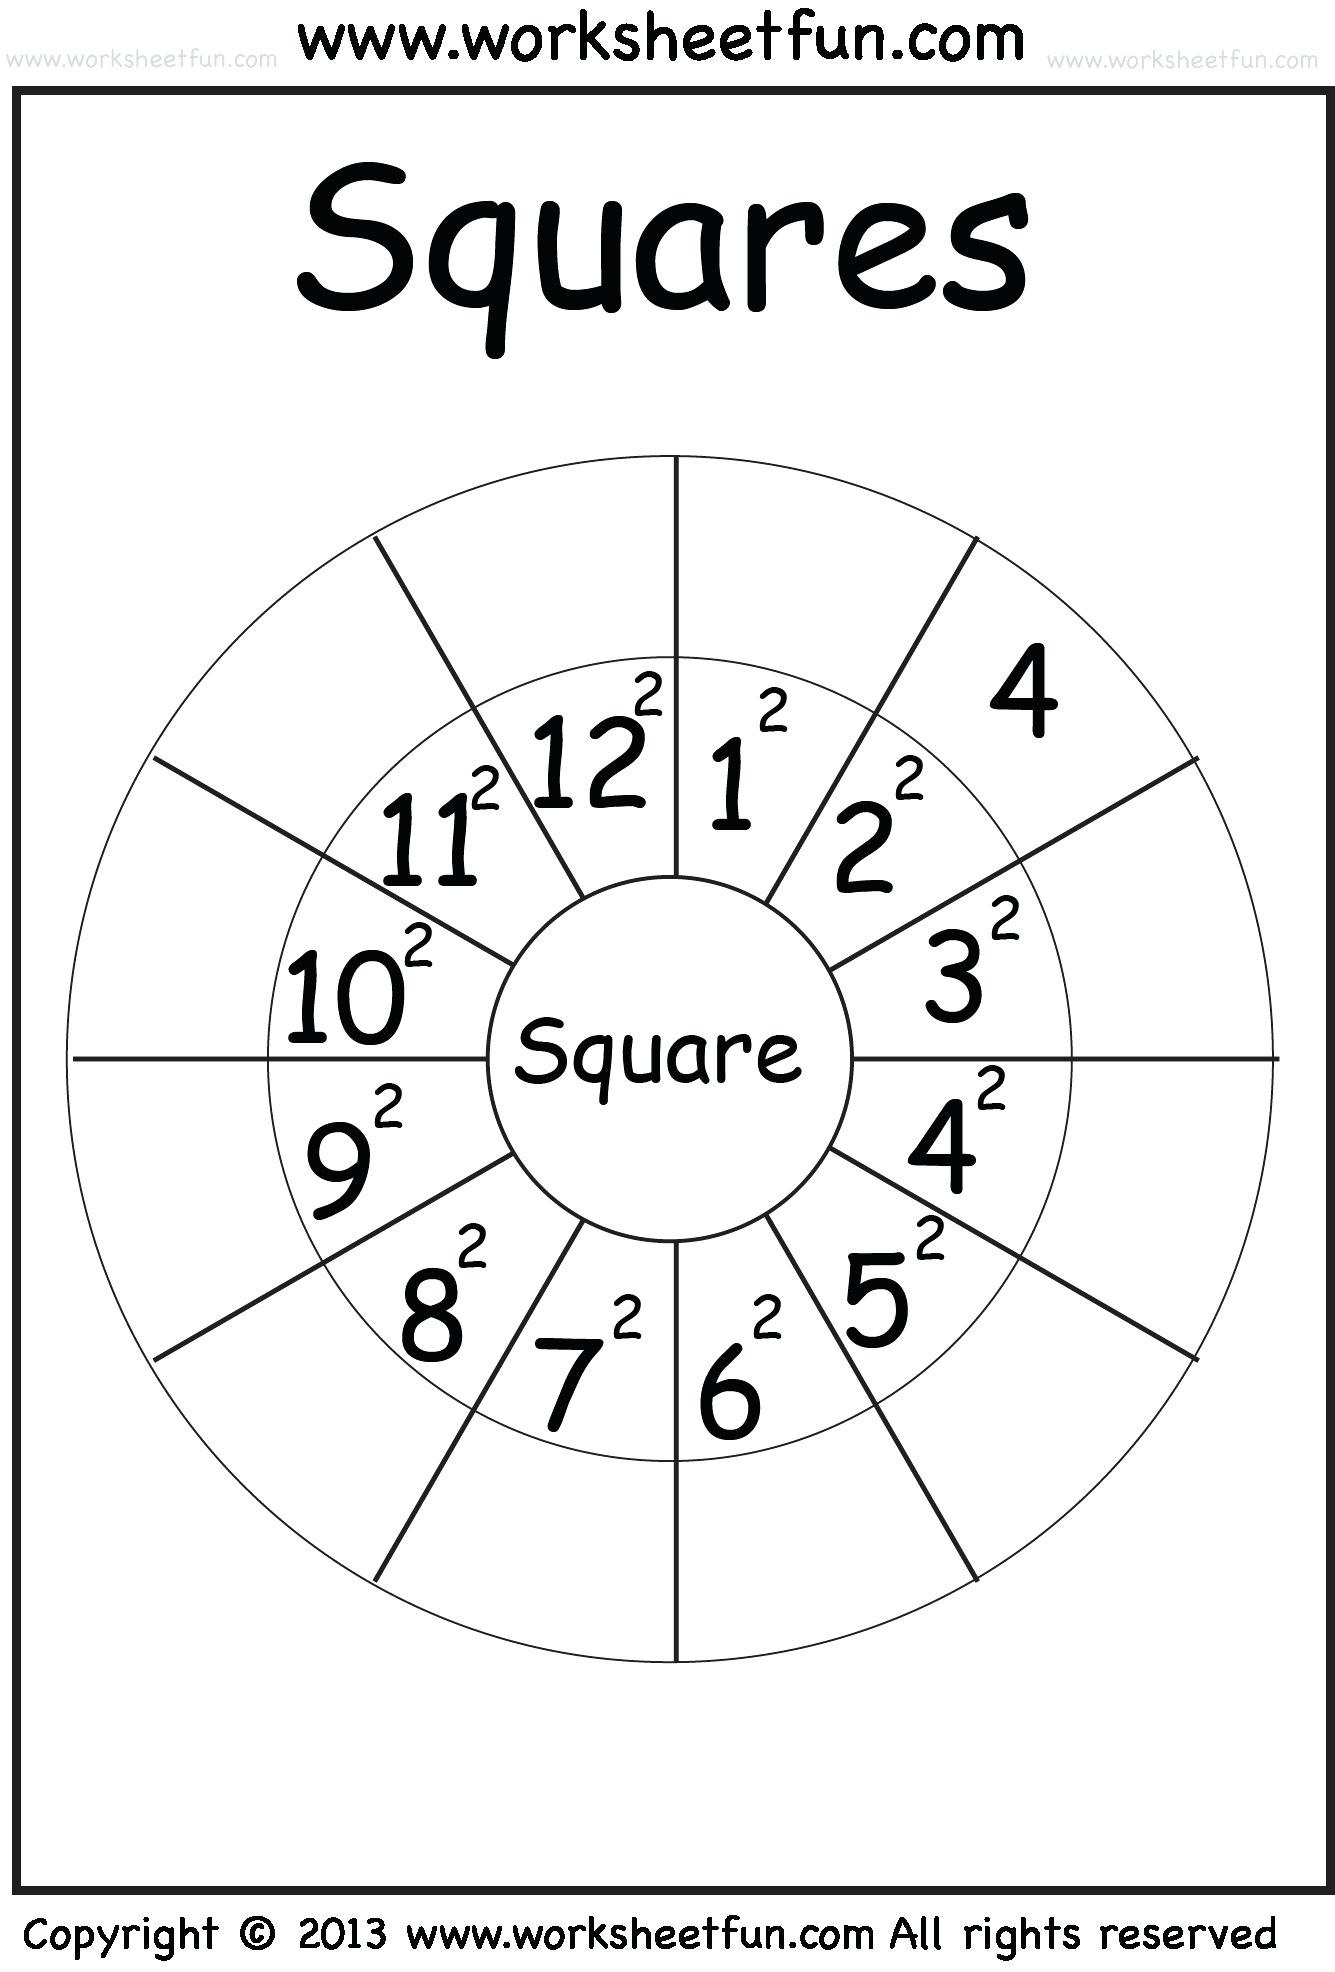 Squares And Square Roots Worksheet Math Perfect Square